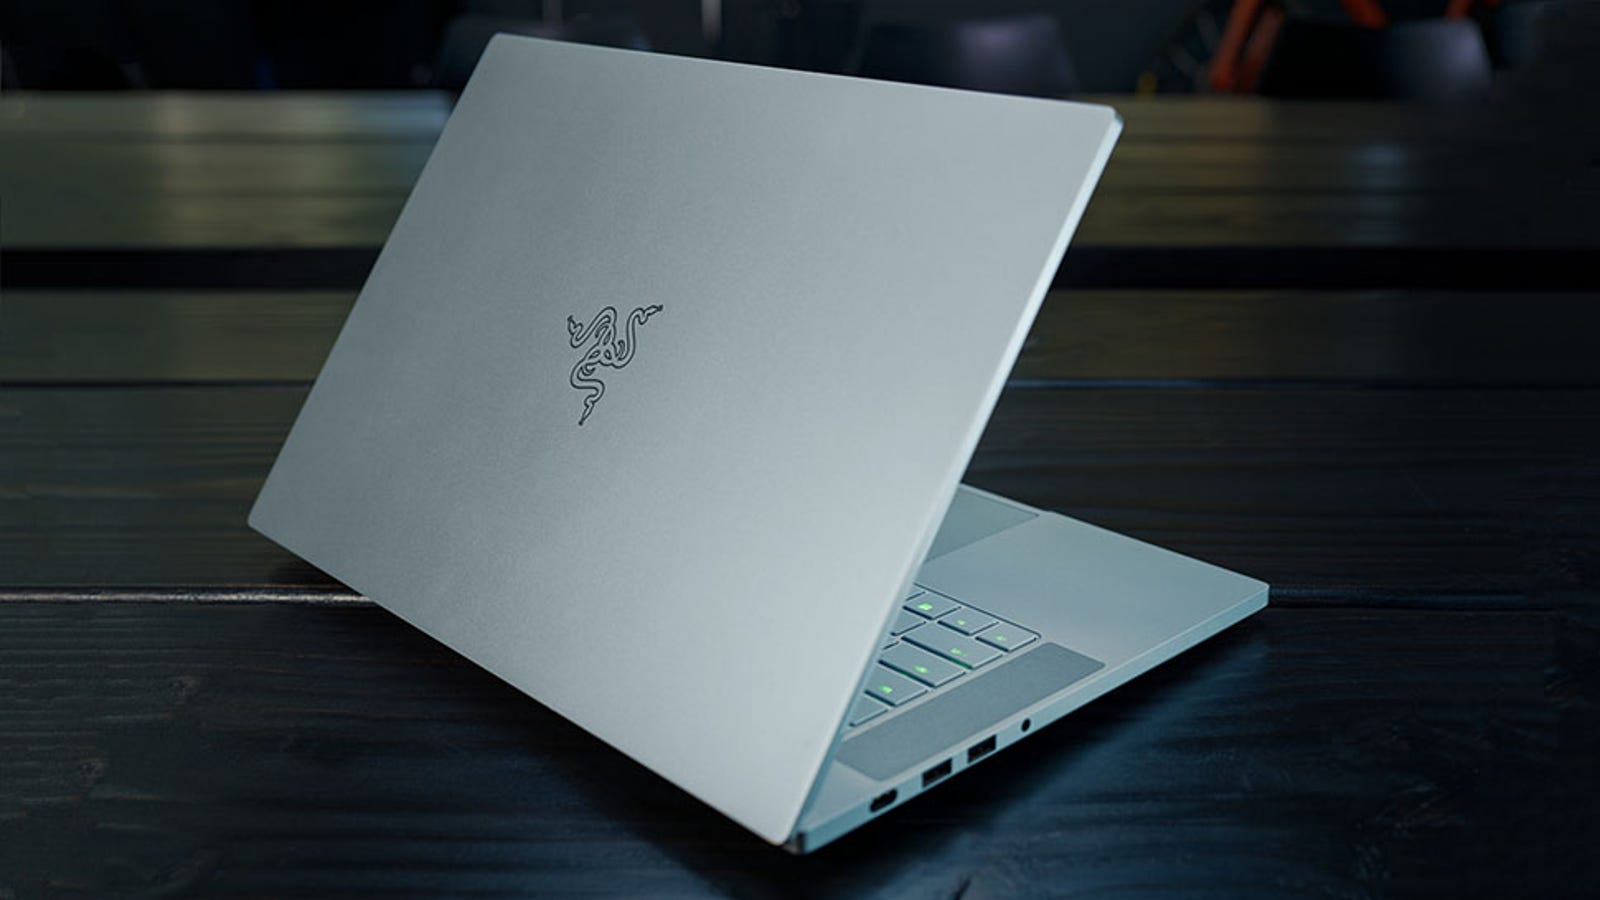 Razer Makes Laptops in White Now